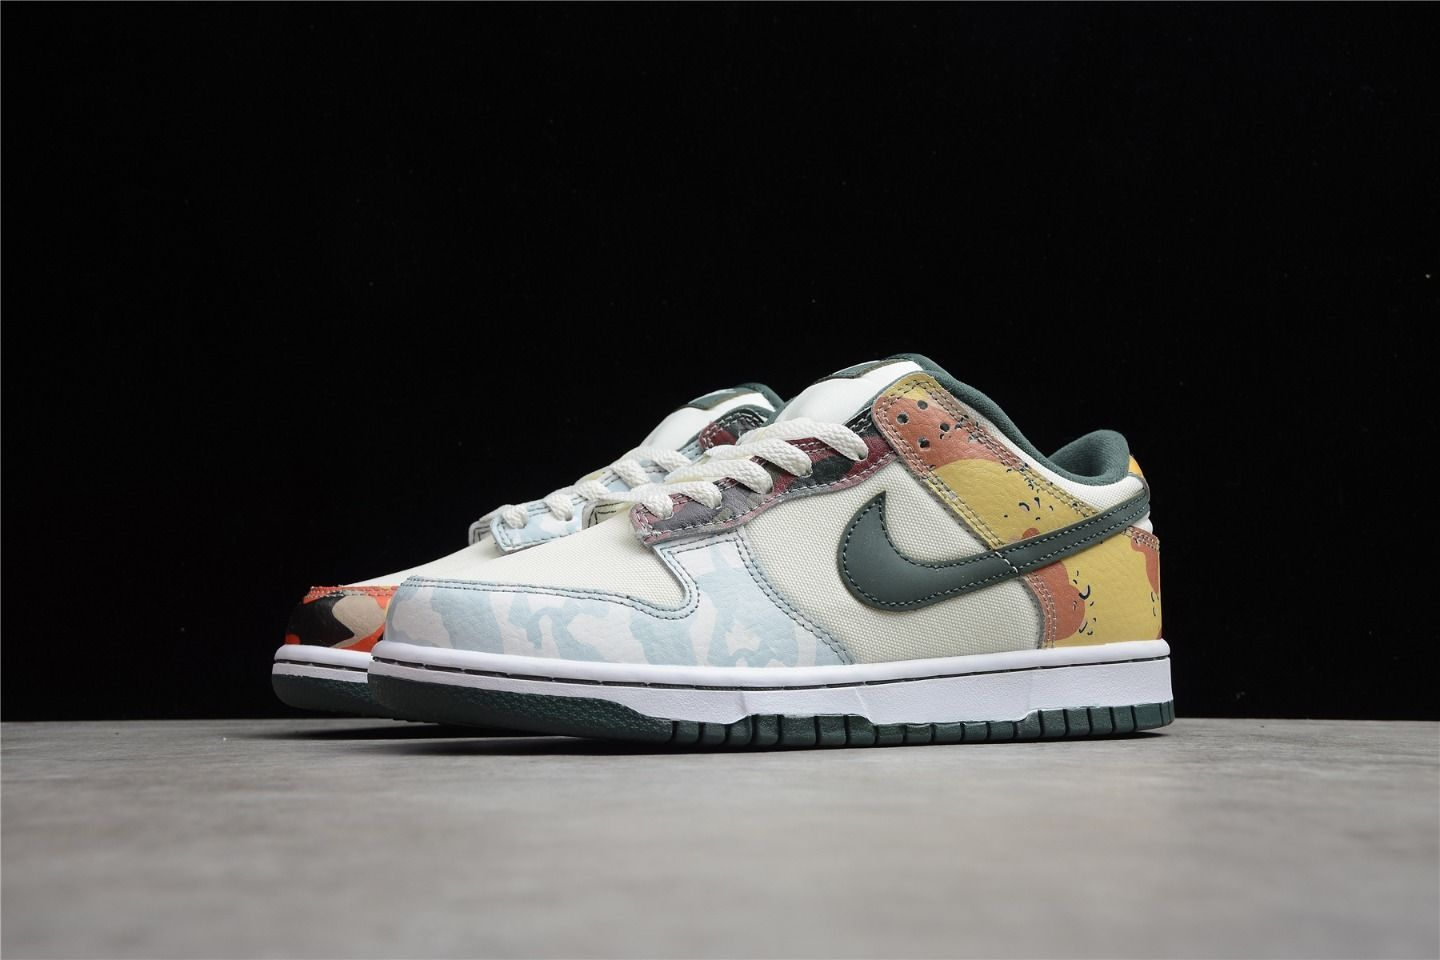 2021 New Nike Dunk Low Multi-Camo DH0957-100 side